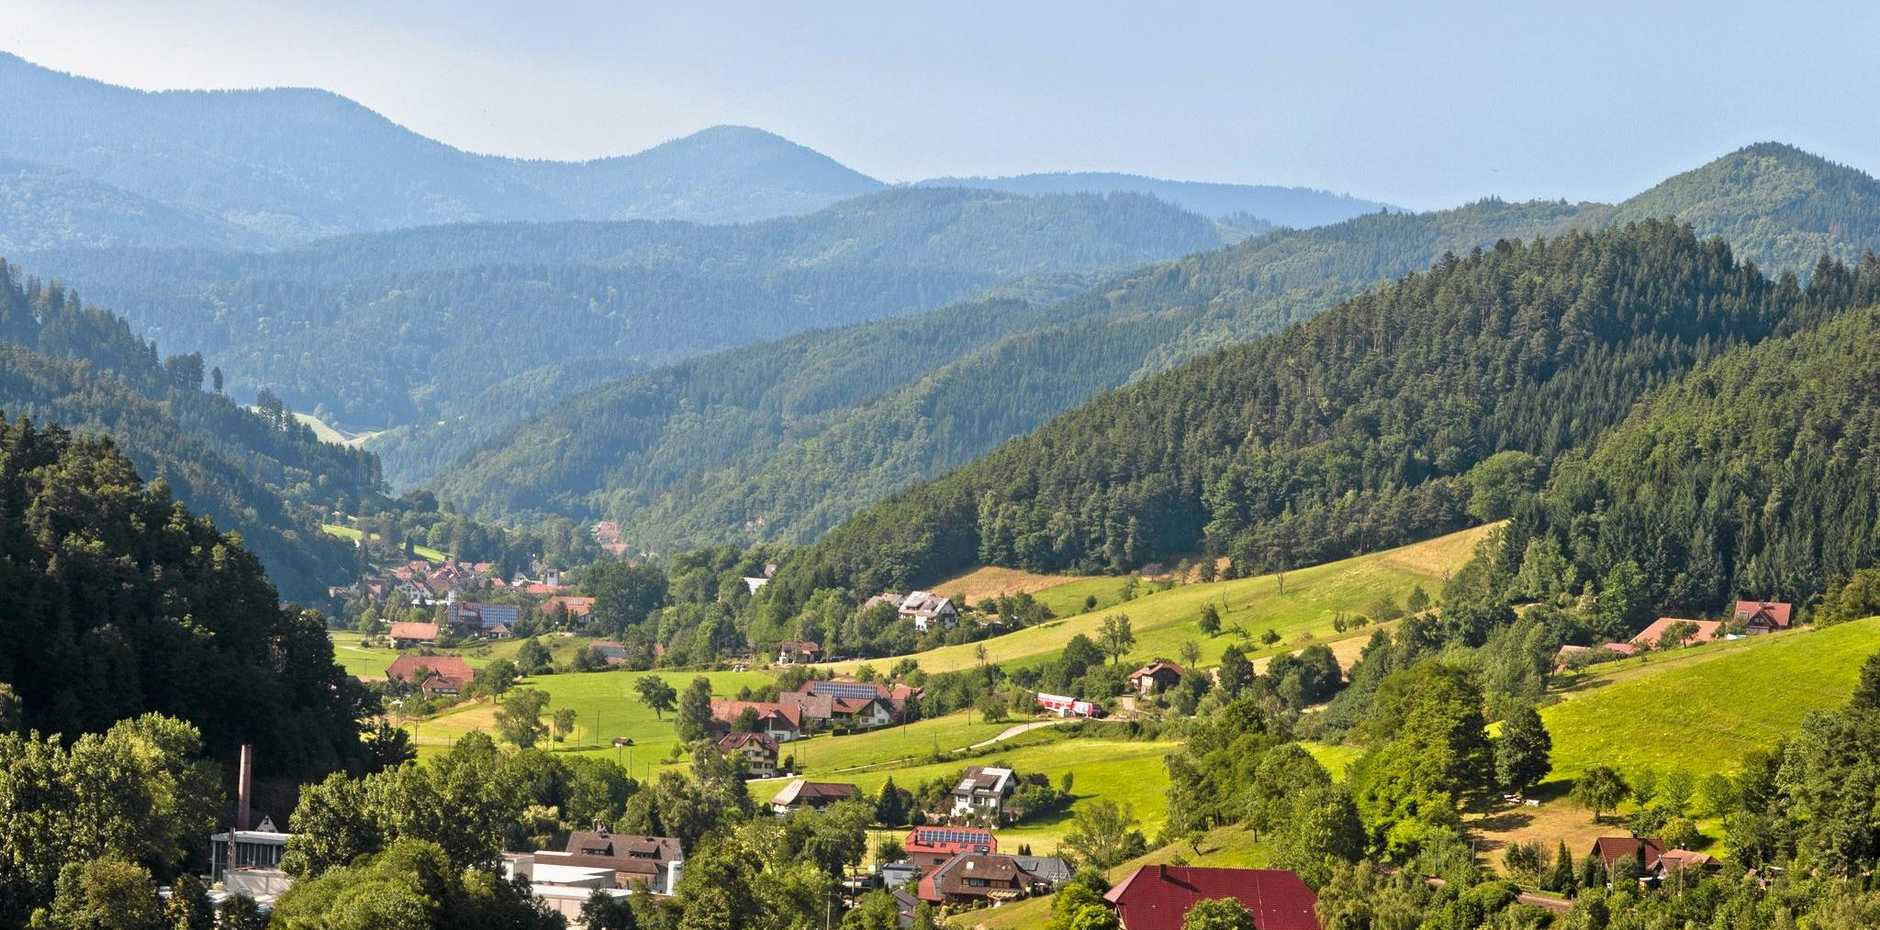 Gutachtal, Black Forest Valley, Schwarzwald, Germany. Expansive view of the beautiful, sunny  Gutach valley with green pasture fields, houses in traditional architectural style and dark green fir tree forest. Dark blue hills rise on the horizon. Horizontal color image with copy space at top.